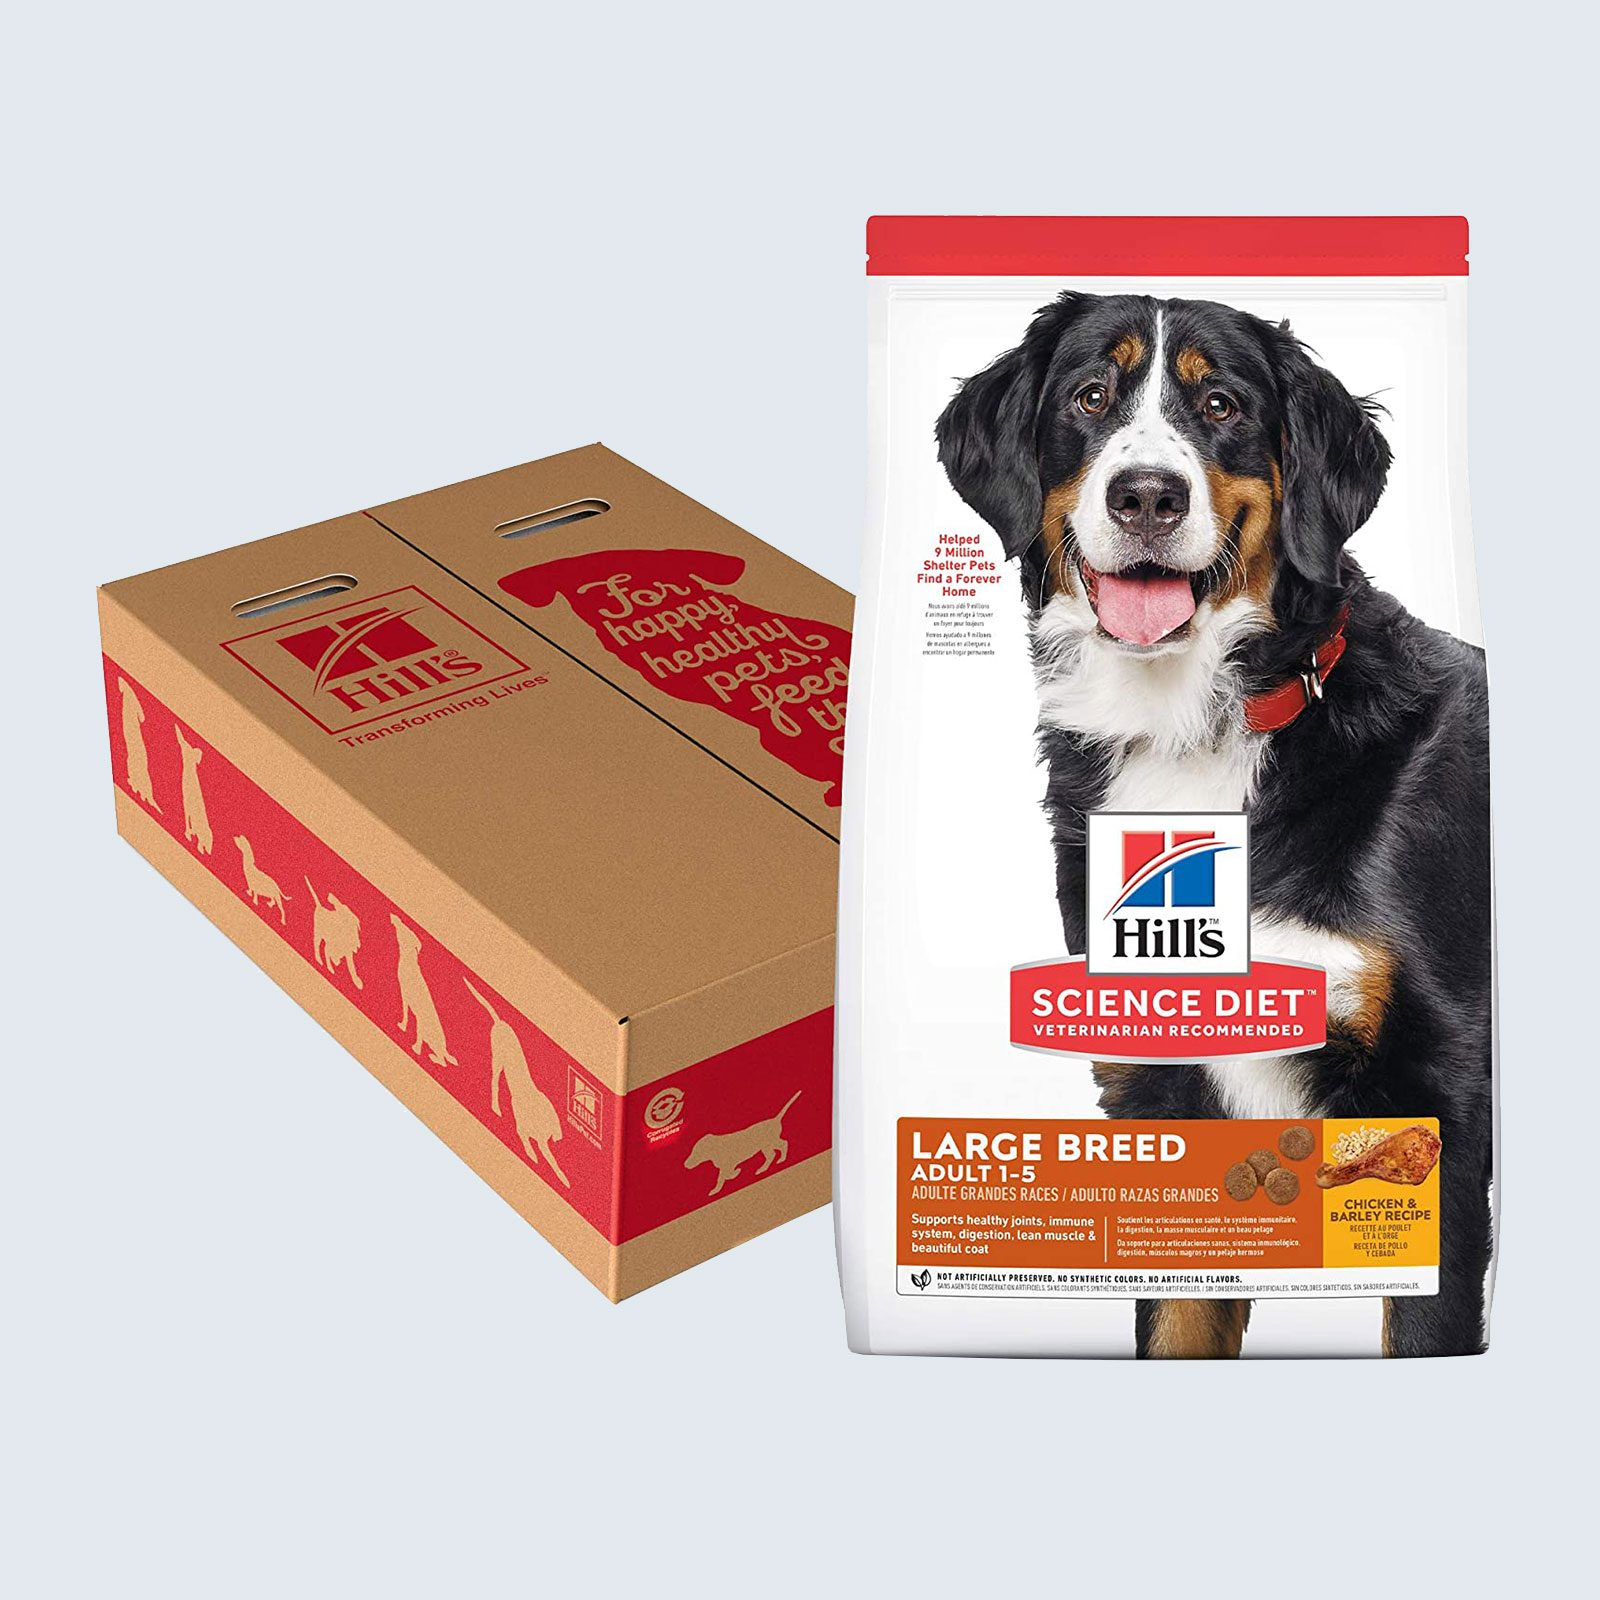 Hill's Science Diet Large Breed